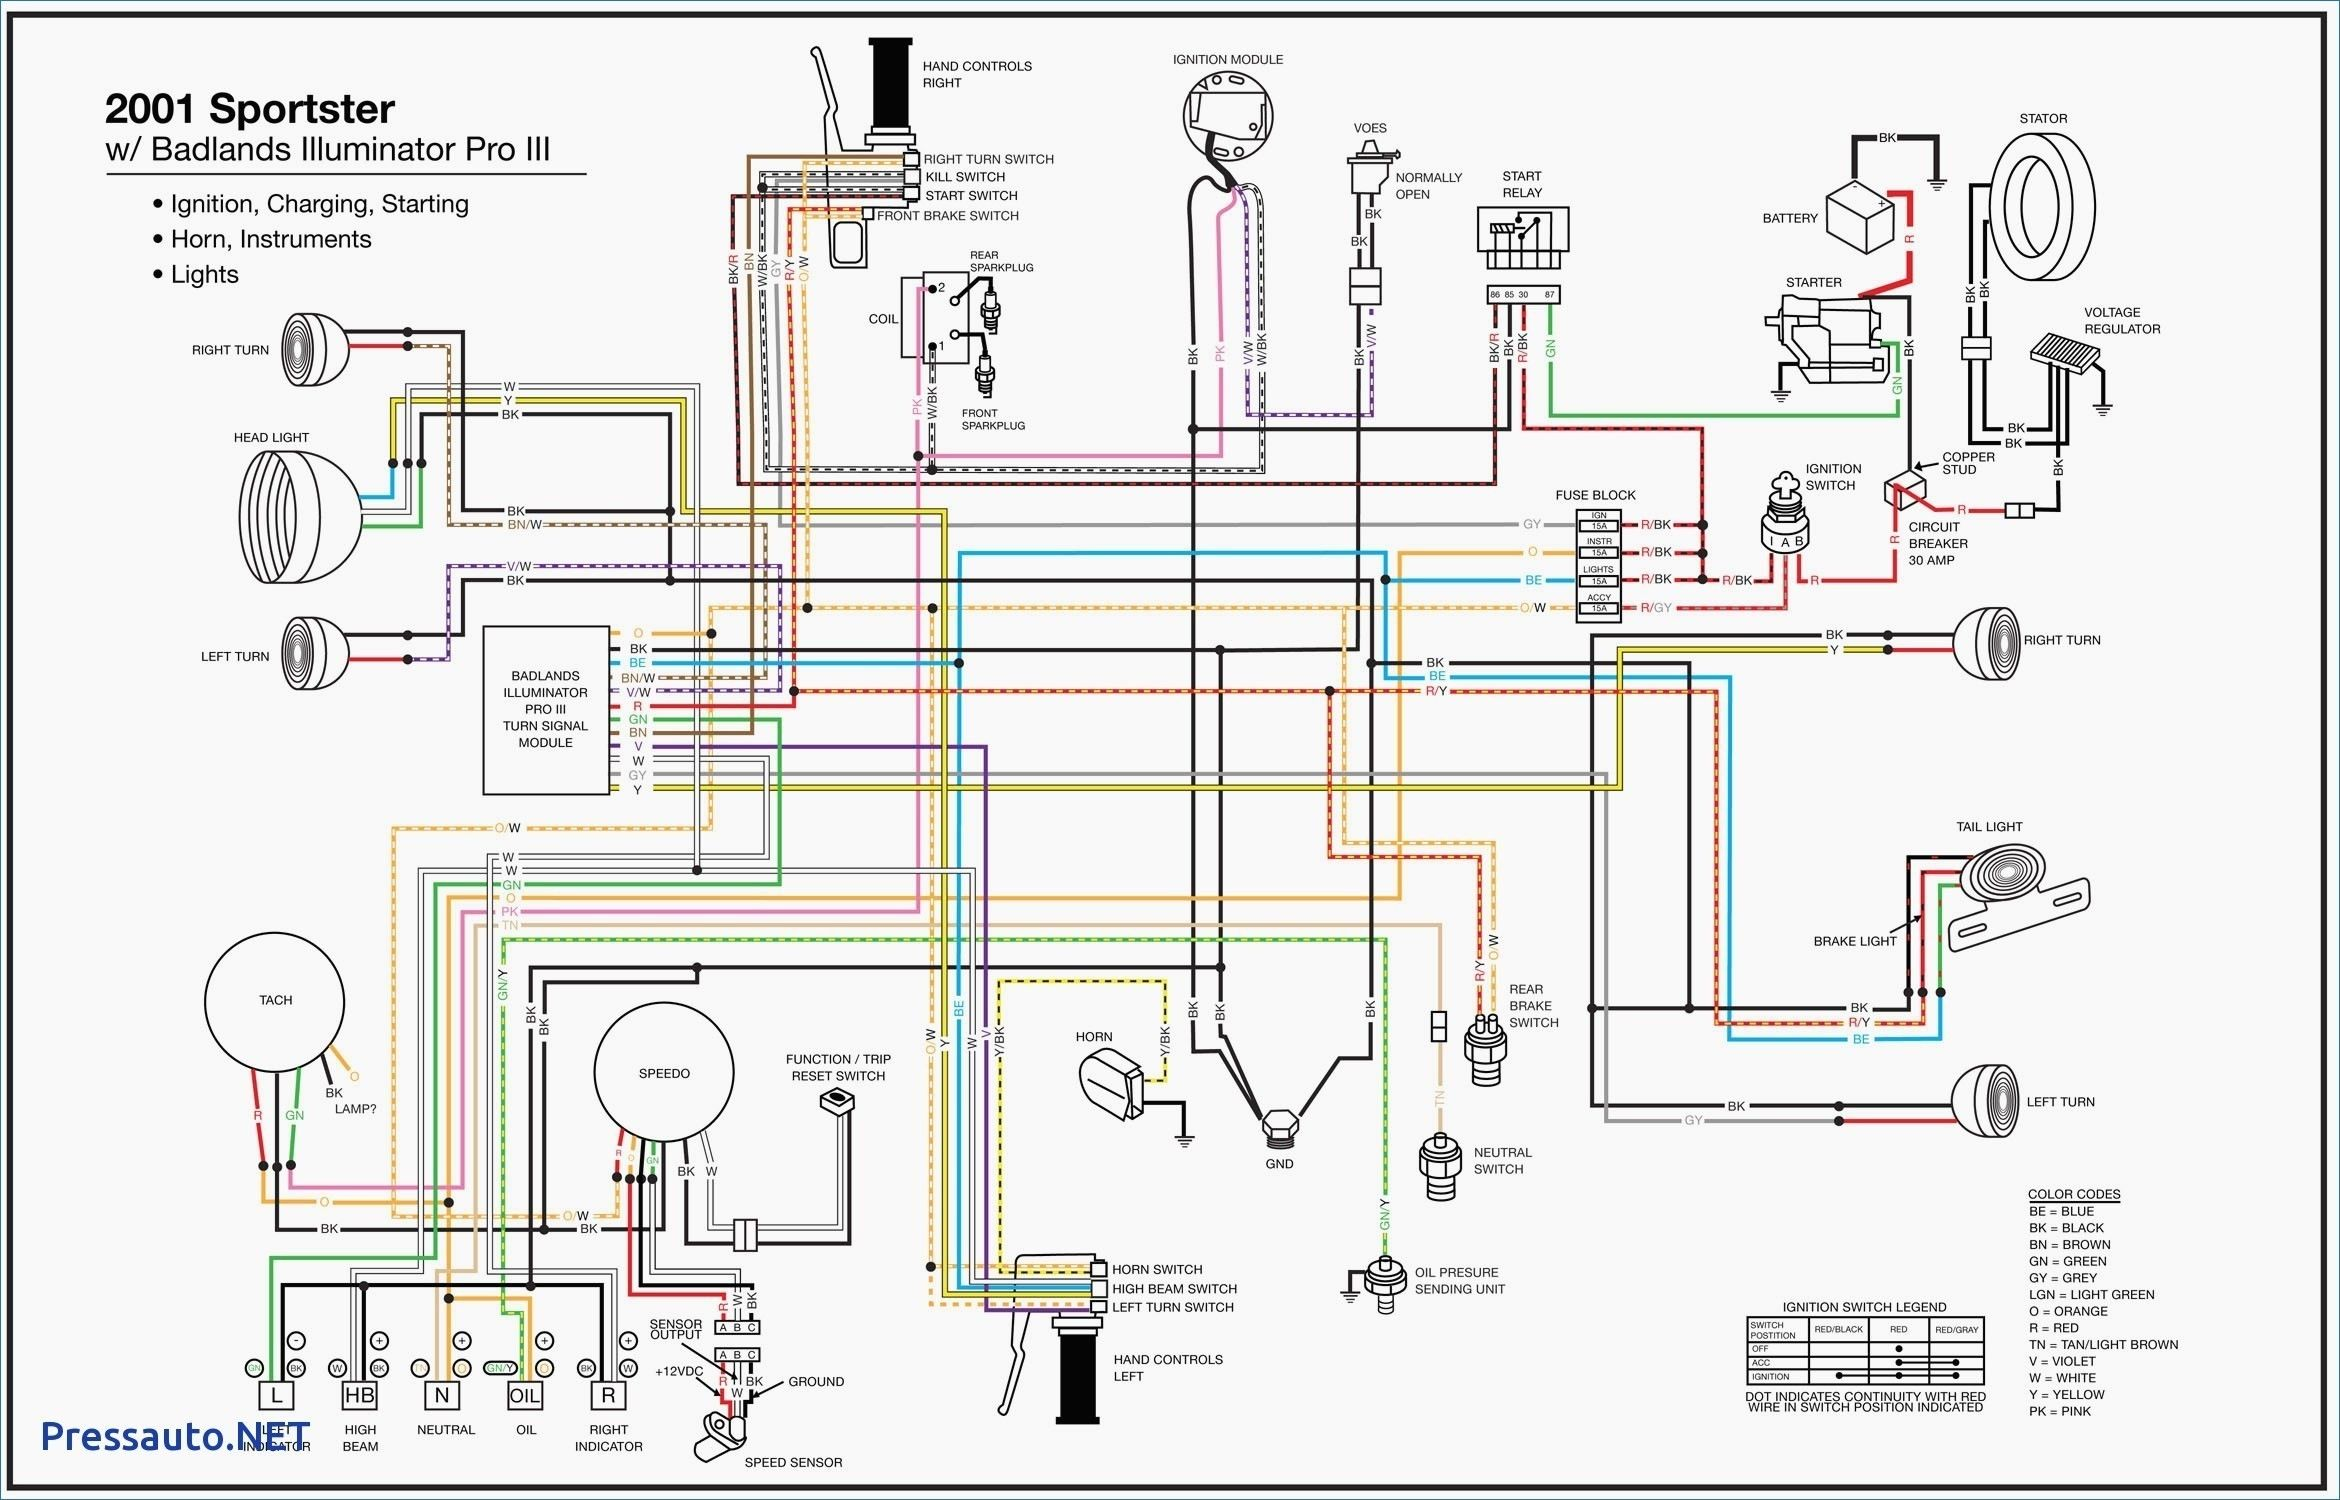 Bmw E46 Ignition Switch Wiring Diagram Diagram Diagramtemplate Diagramsample Sportster Montajes Electricos Esquemas Electricos